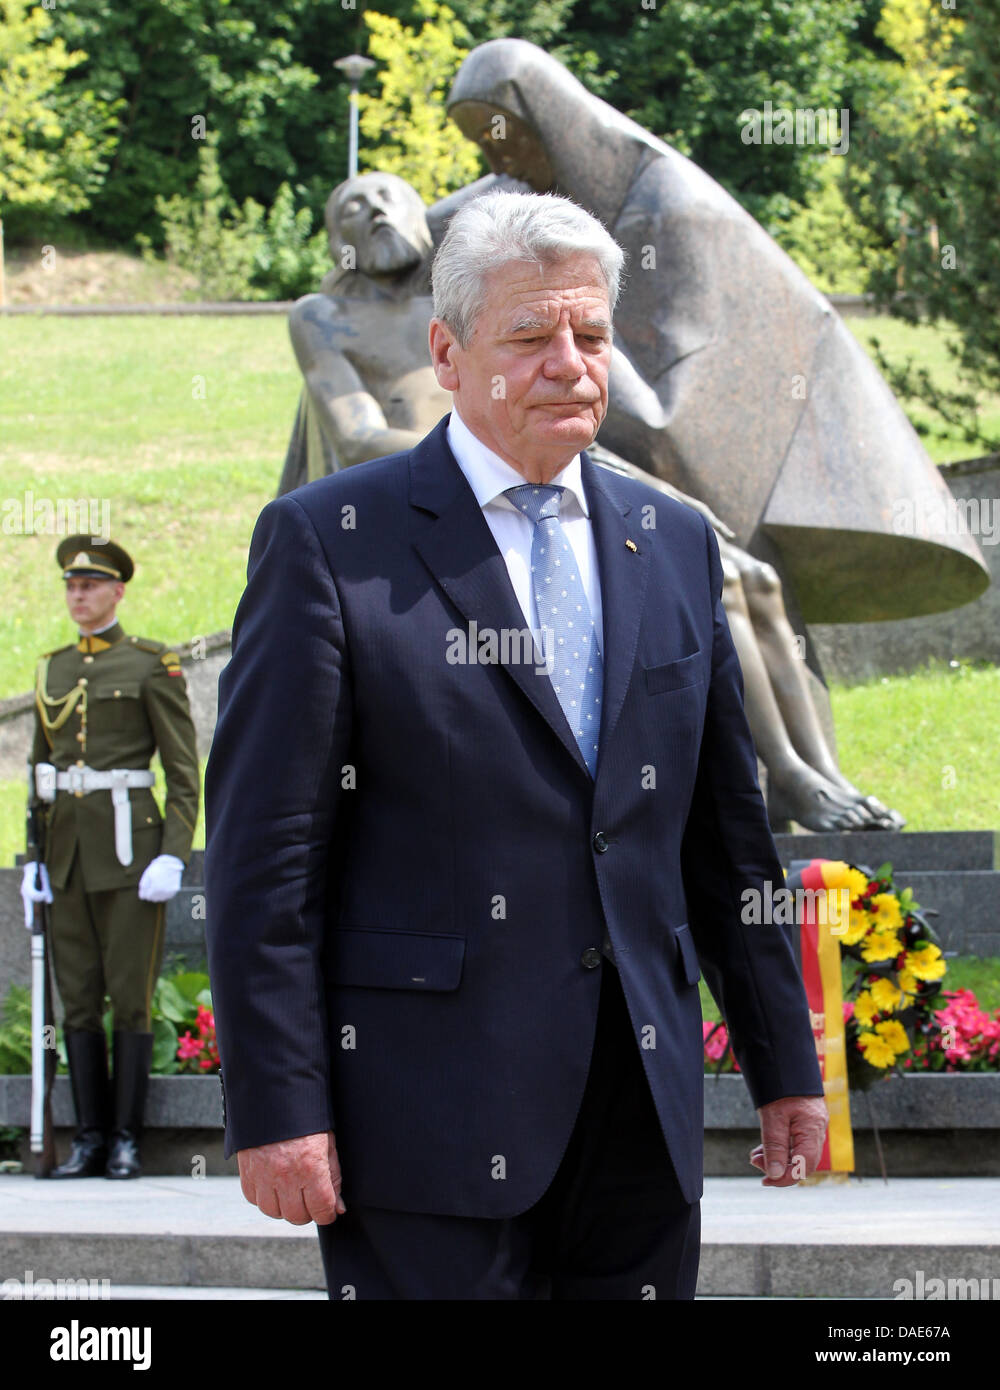 Vilnius, Lithuania. 11th July, 2013. German President Joachim Gauck lays a wreath at the national memorial for the Stock Photo